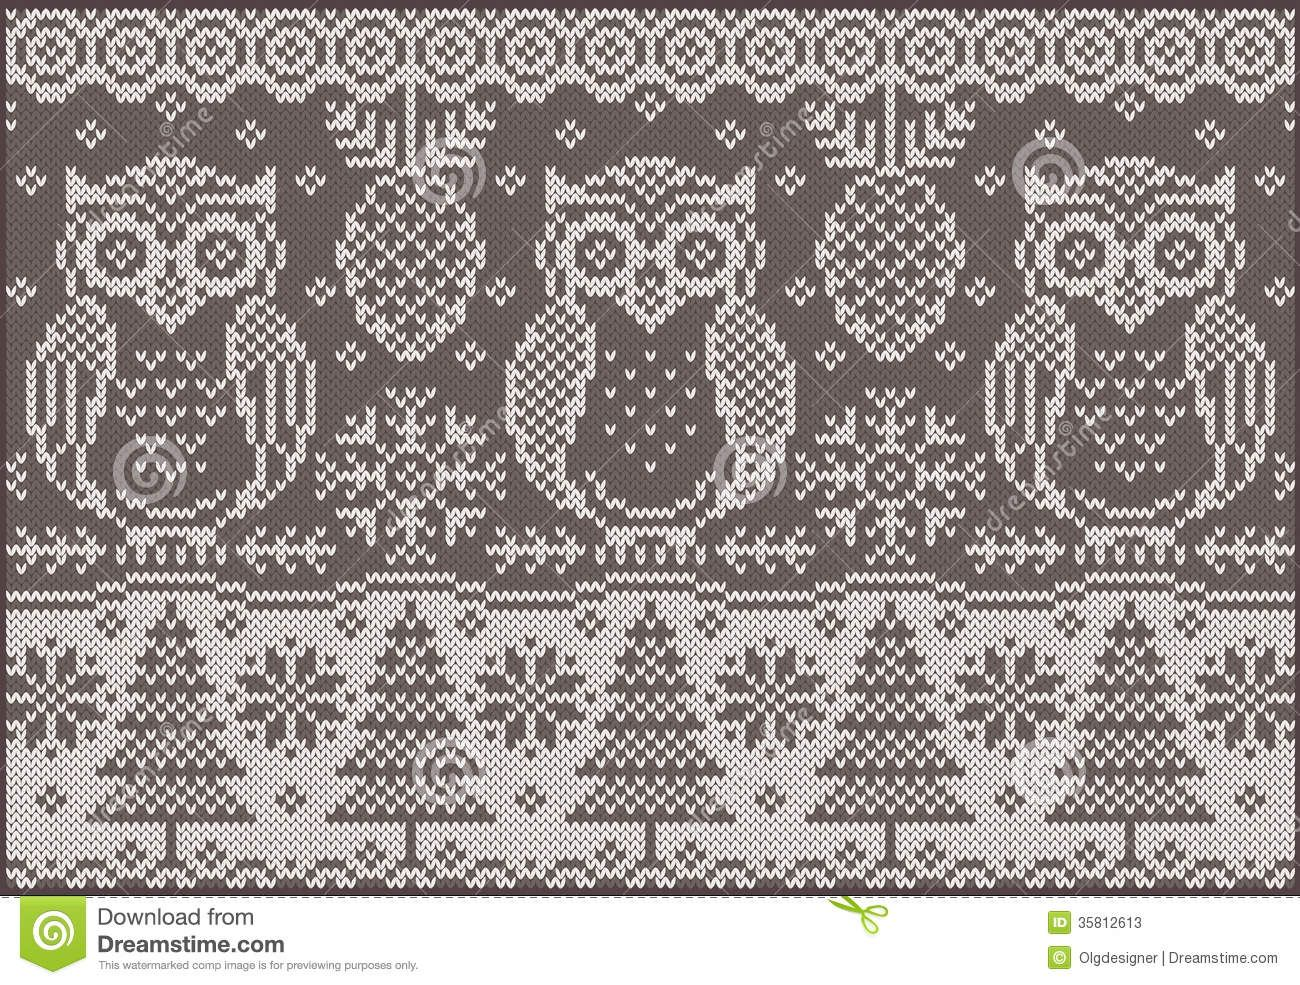 Knitted christmas google keress knitting pinterest google knitted pattern with owls vector creative illustration with winter birds by olgdesigner via shutterstock bankloansurffo Image collections